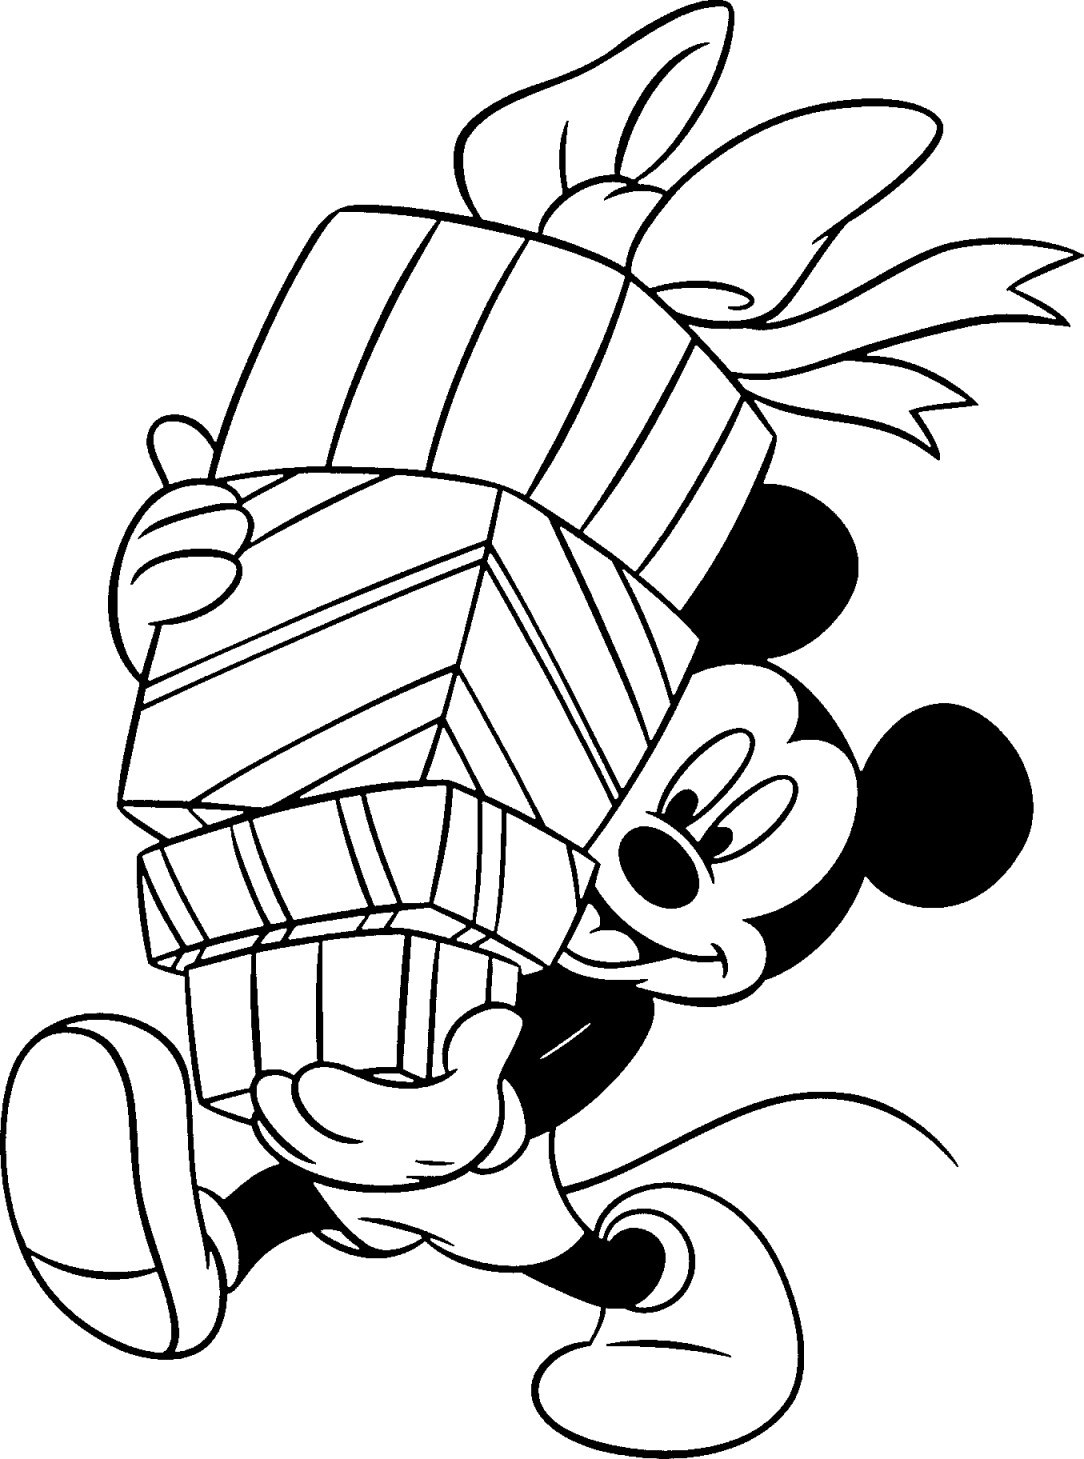 mickey mouse characters coloring pages mickey mouse coloring pages 13 disney39s world of wonders mouse characters pages mickey coloring